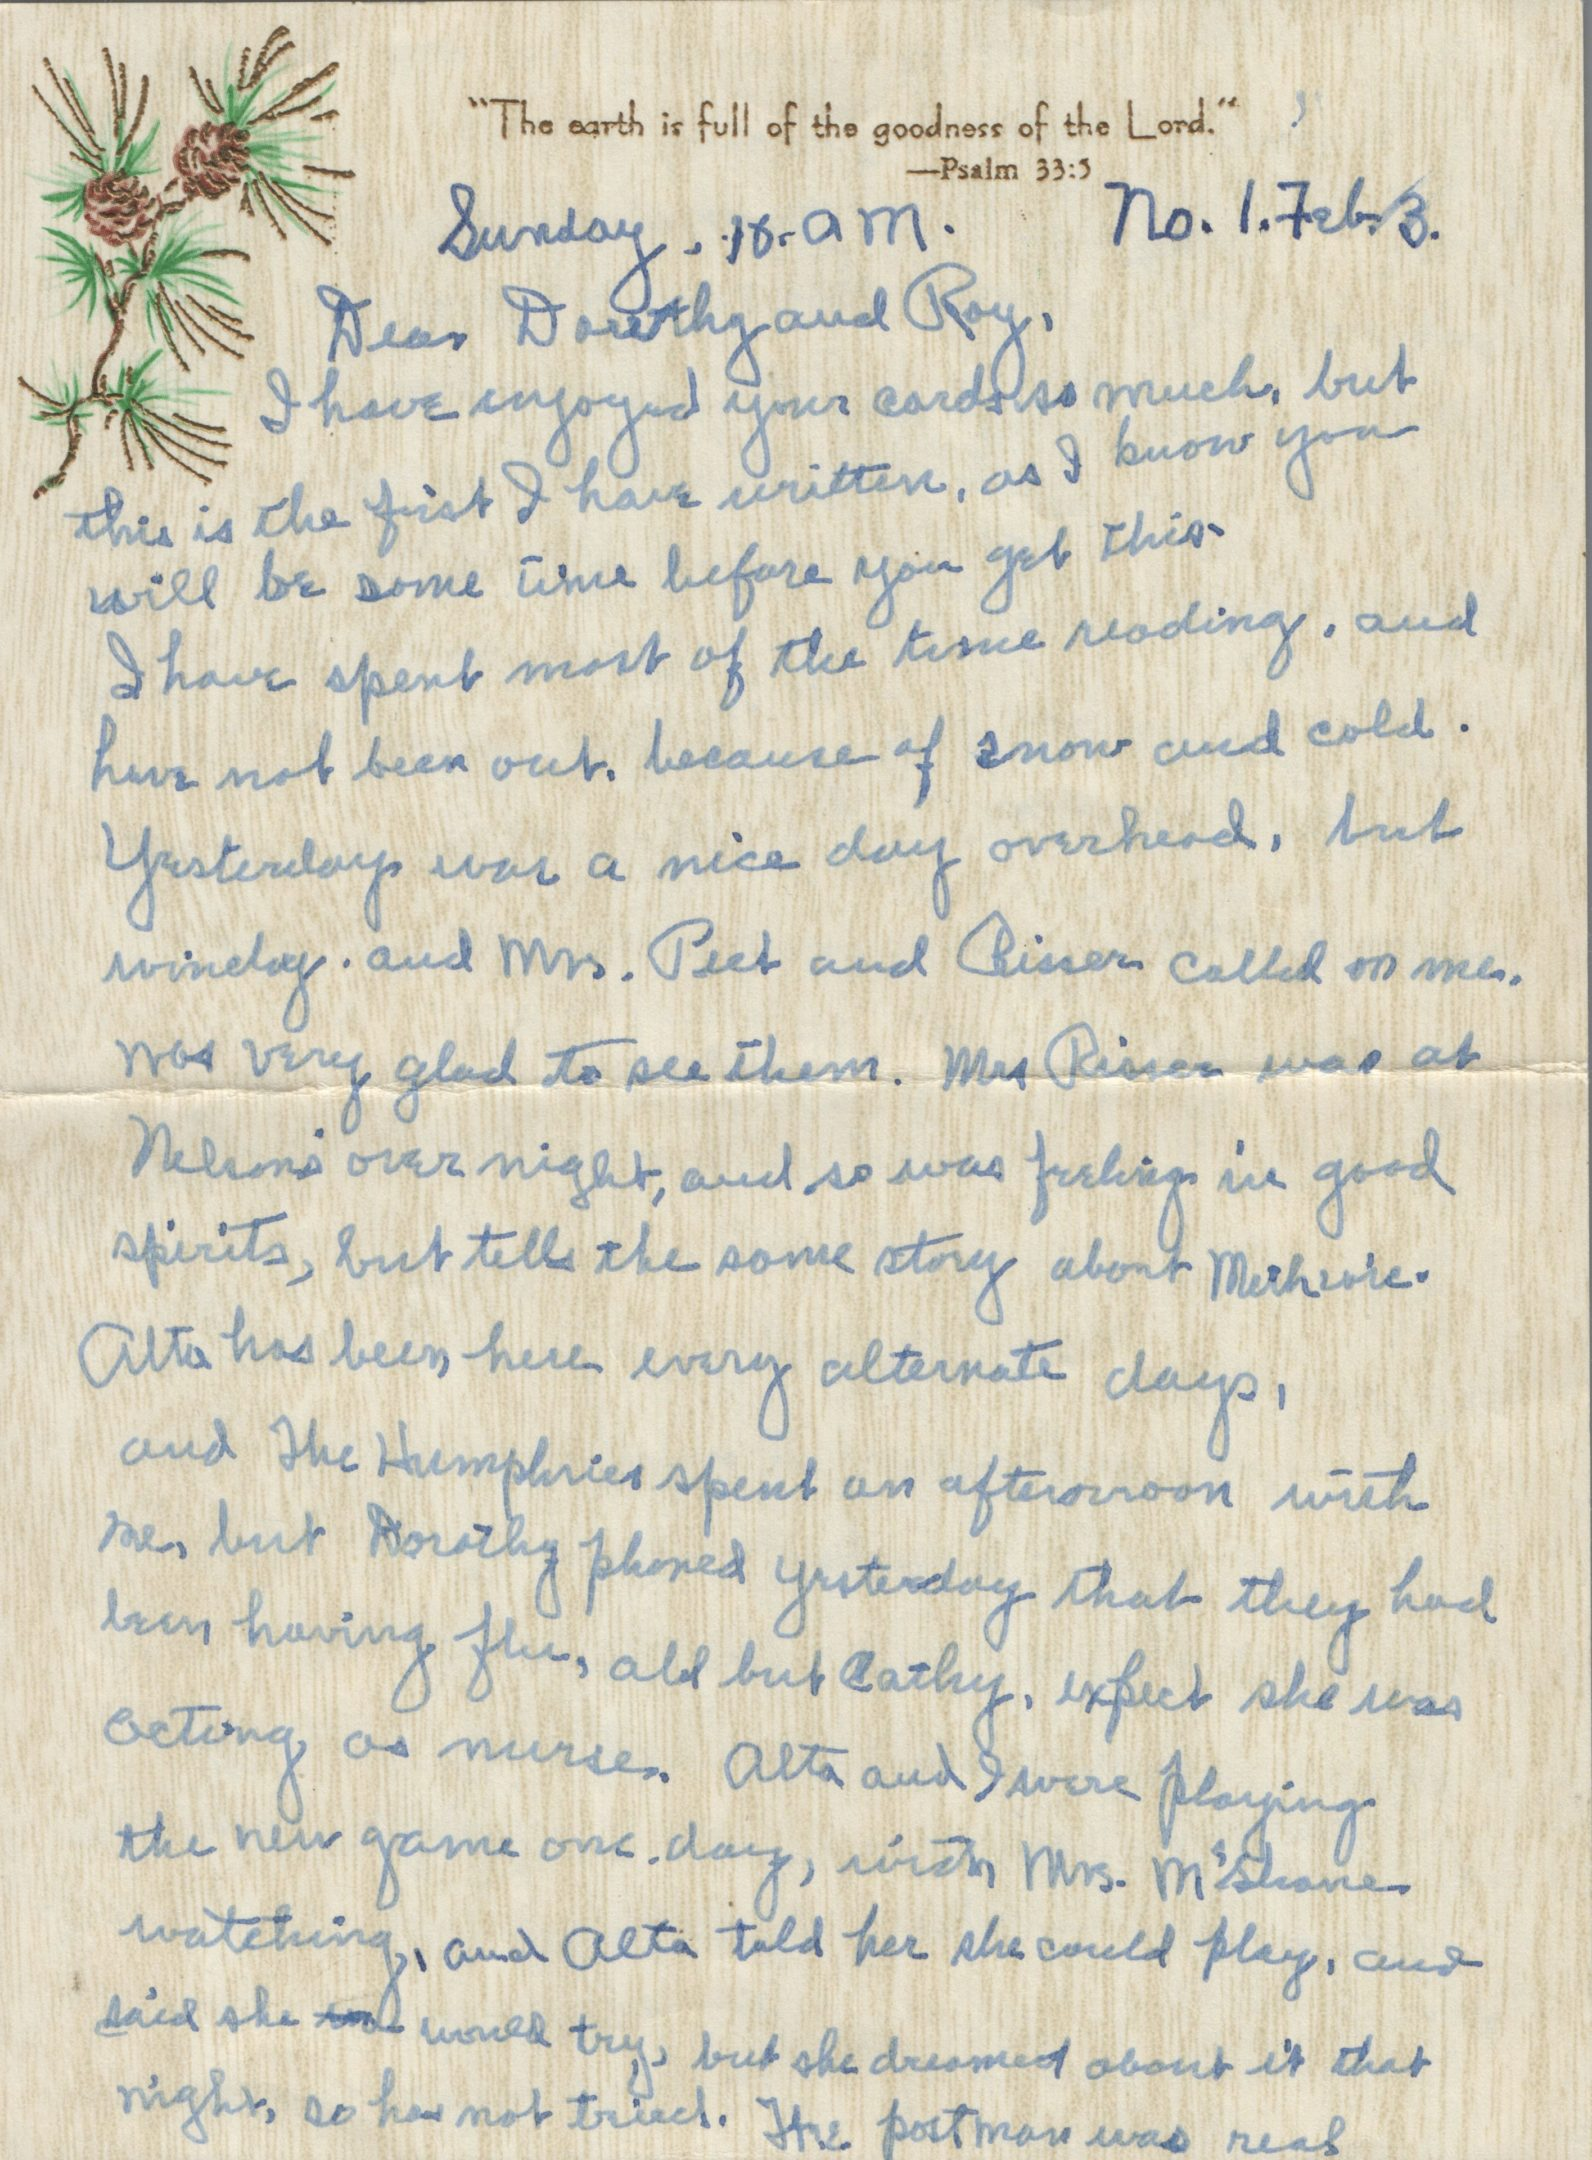 Photo of 1950s Letter from Nellie Neff to Dorothy and Roy Johnson